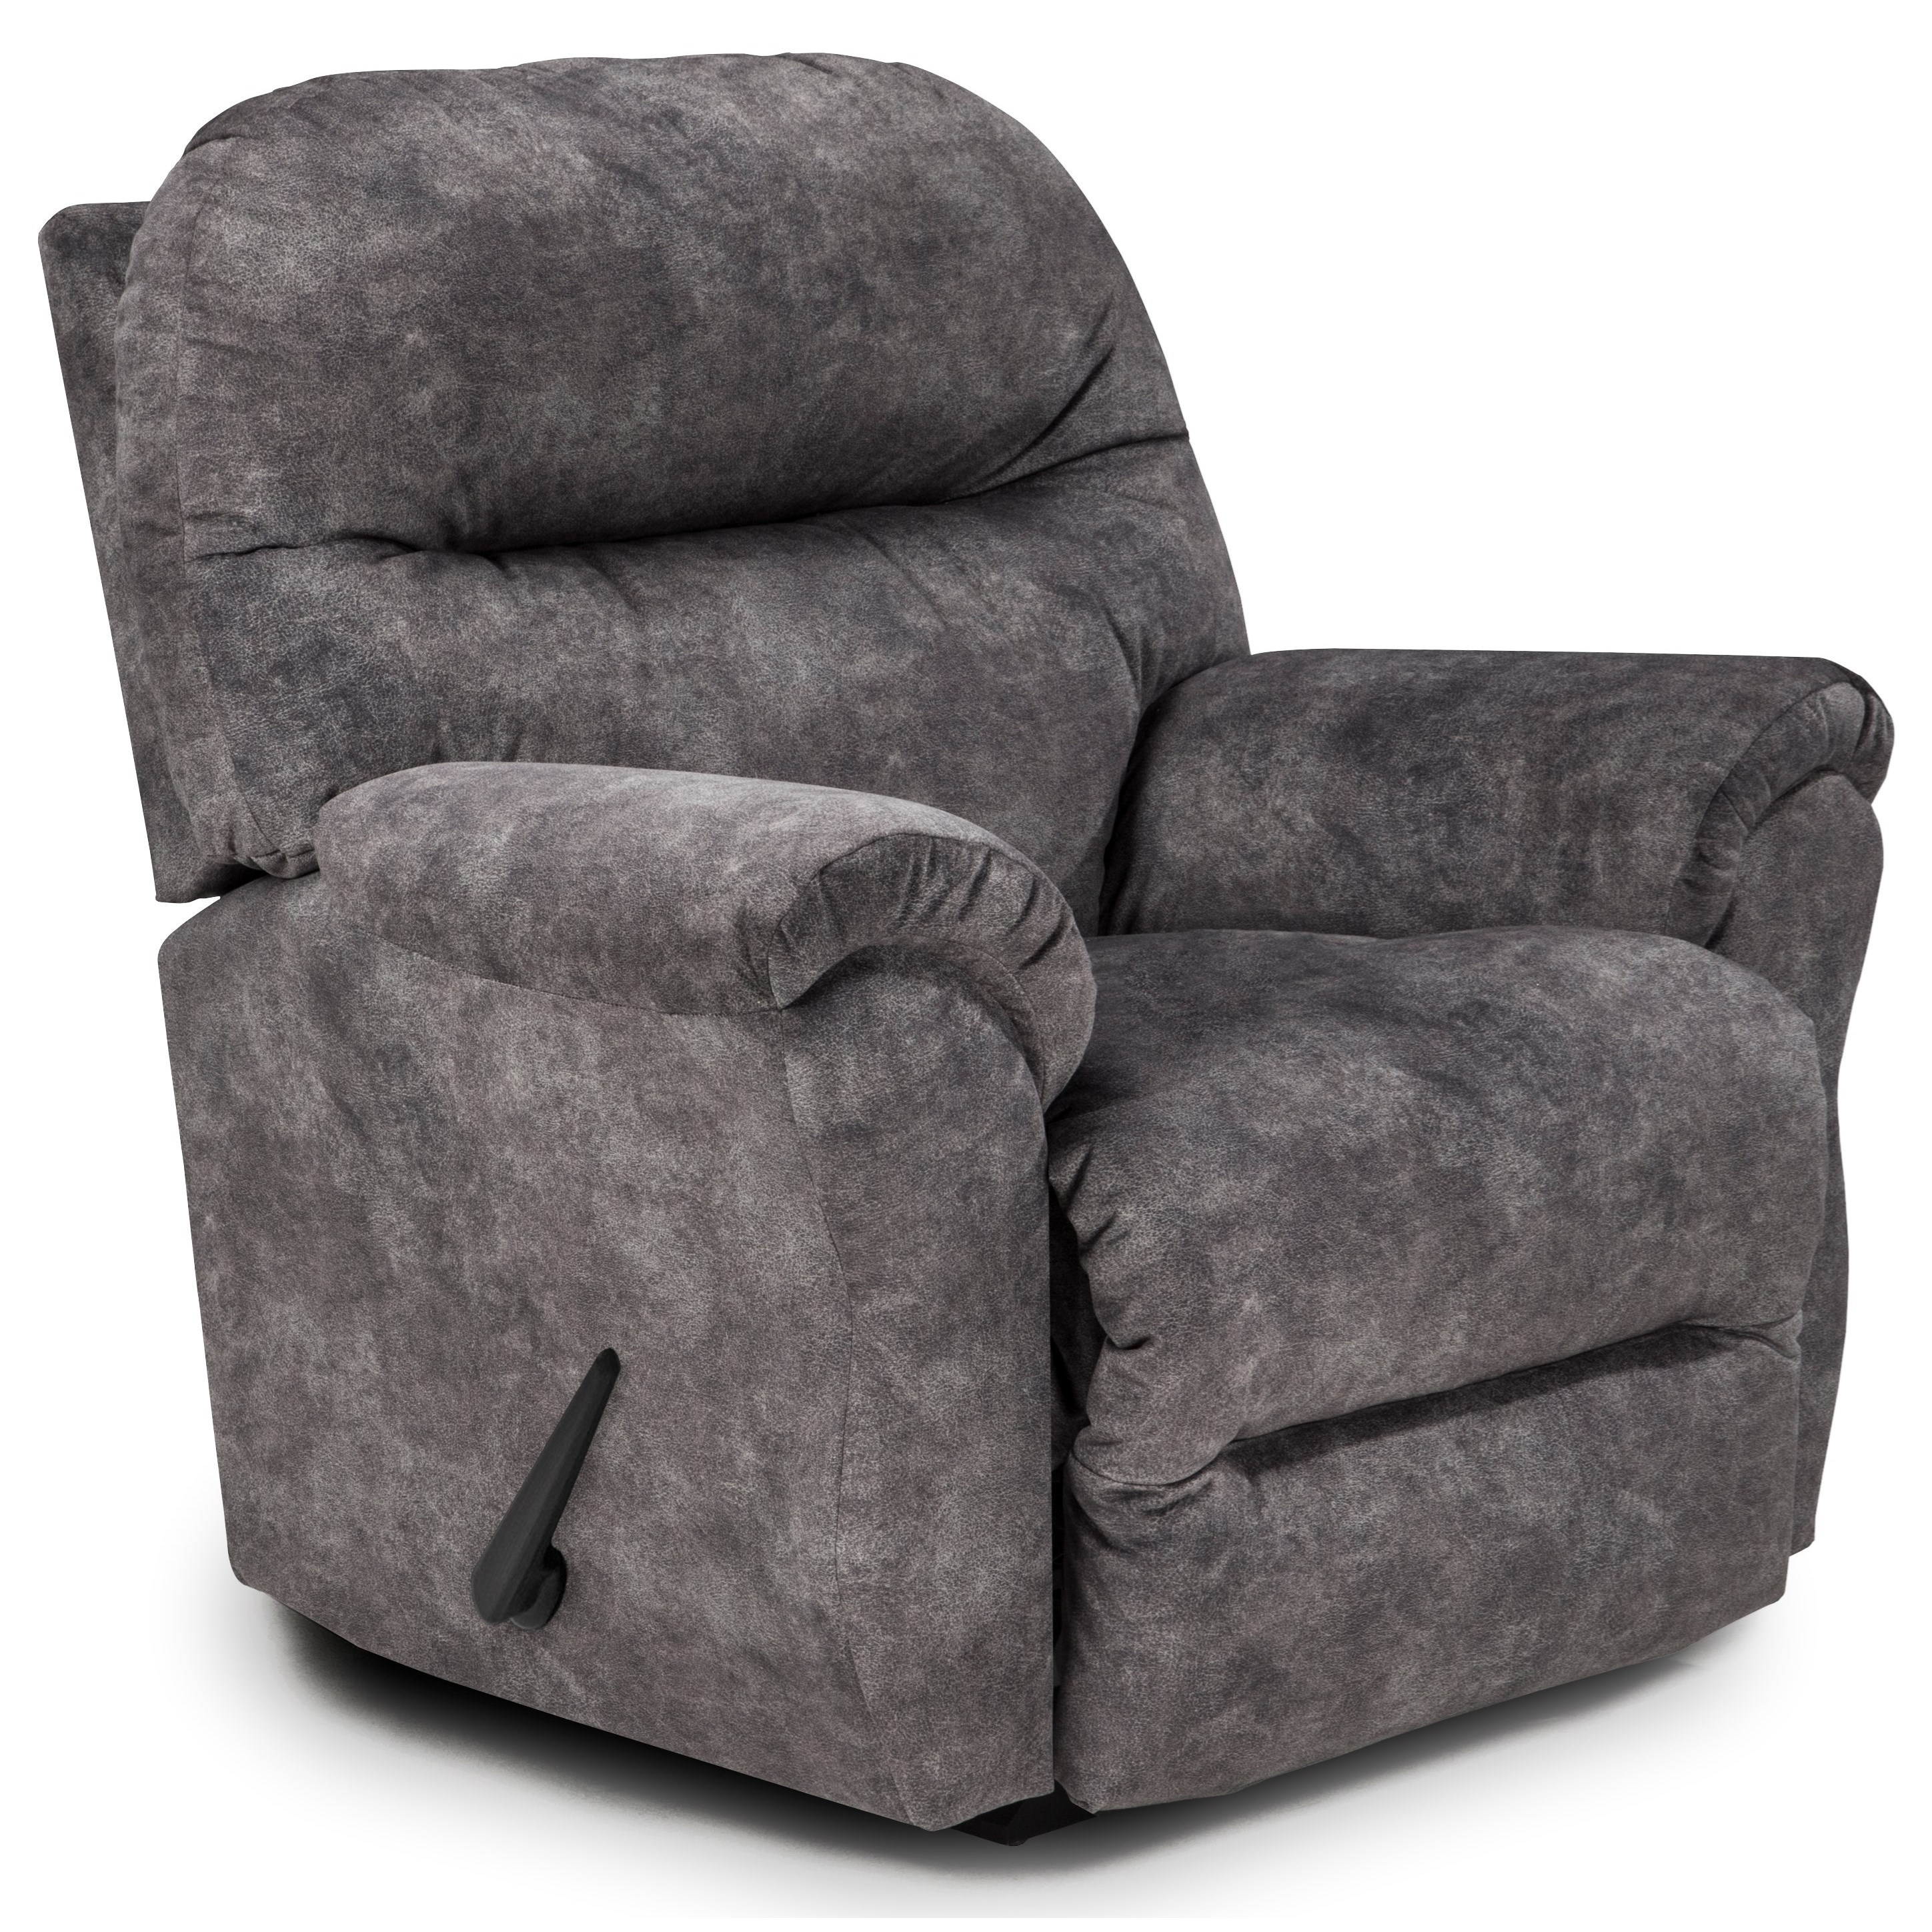 swivel rocking recliner chair dining room covers perth best home furnishings recliners medium bodie